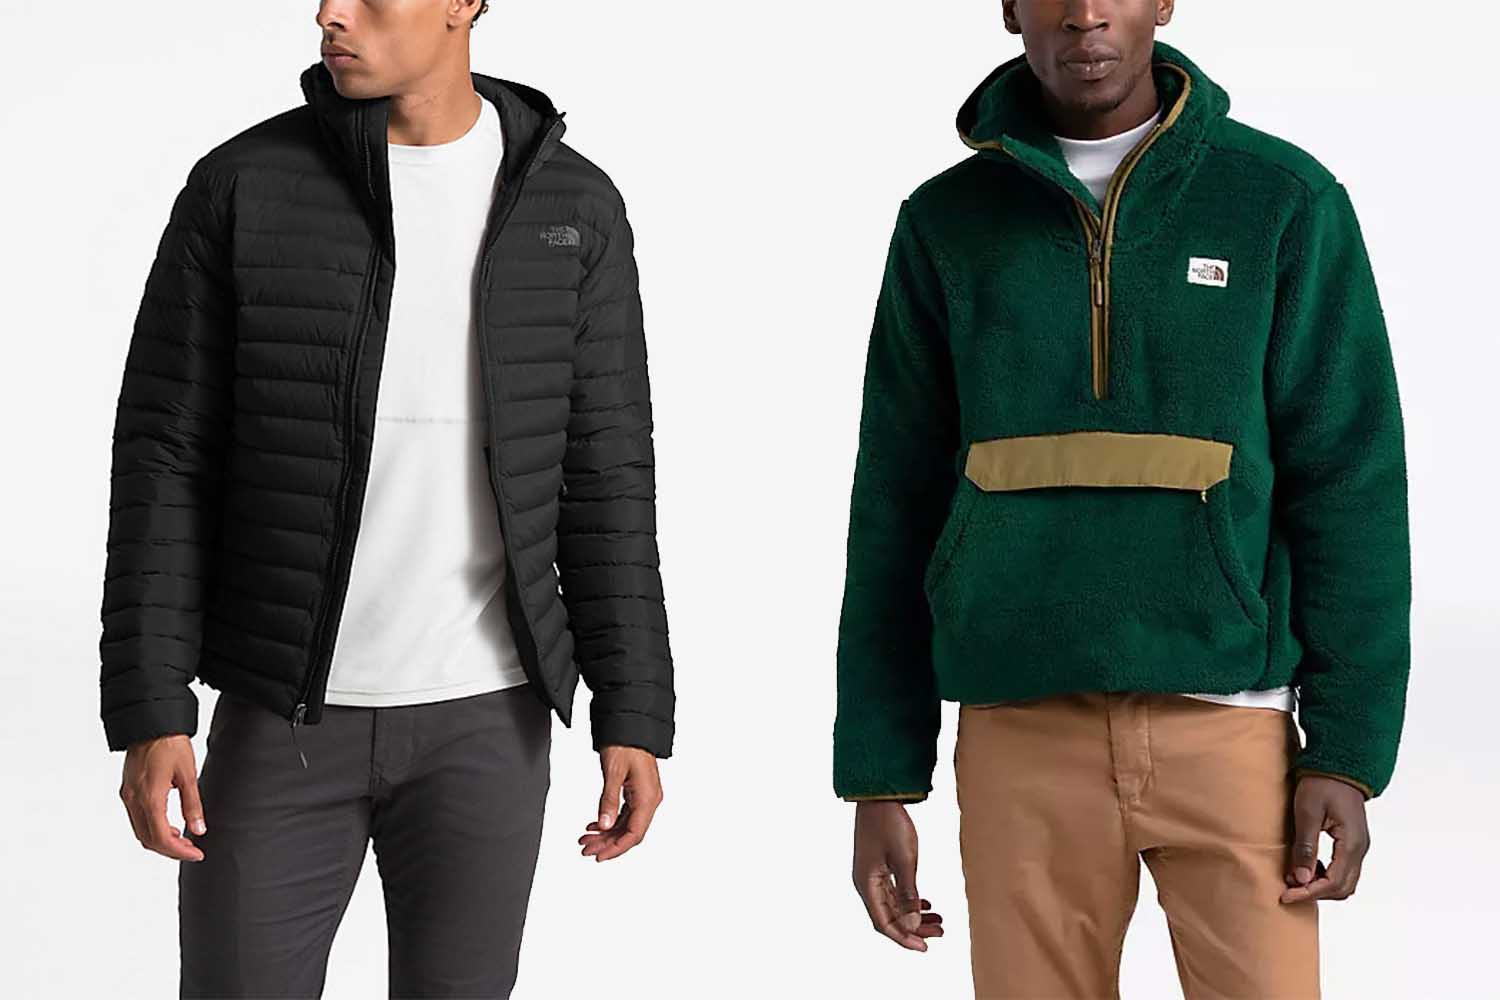 You can take 30% off tons of North Face styles, like the Stretch Down hoodie and Campshire Pullover